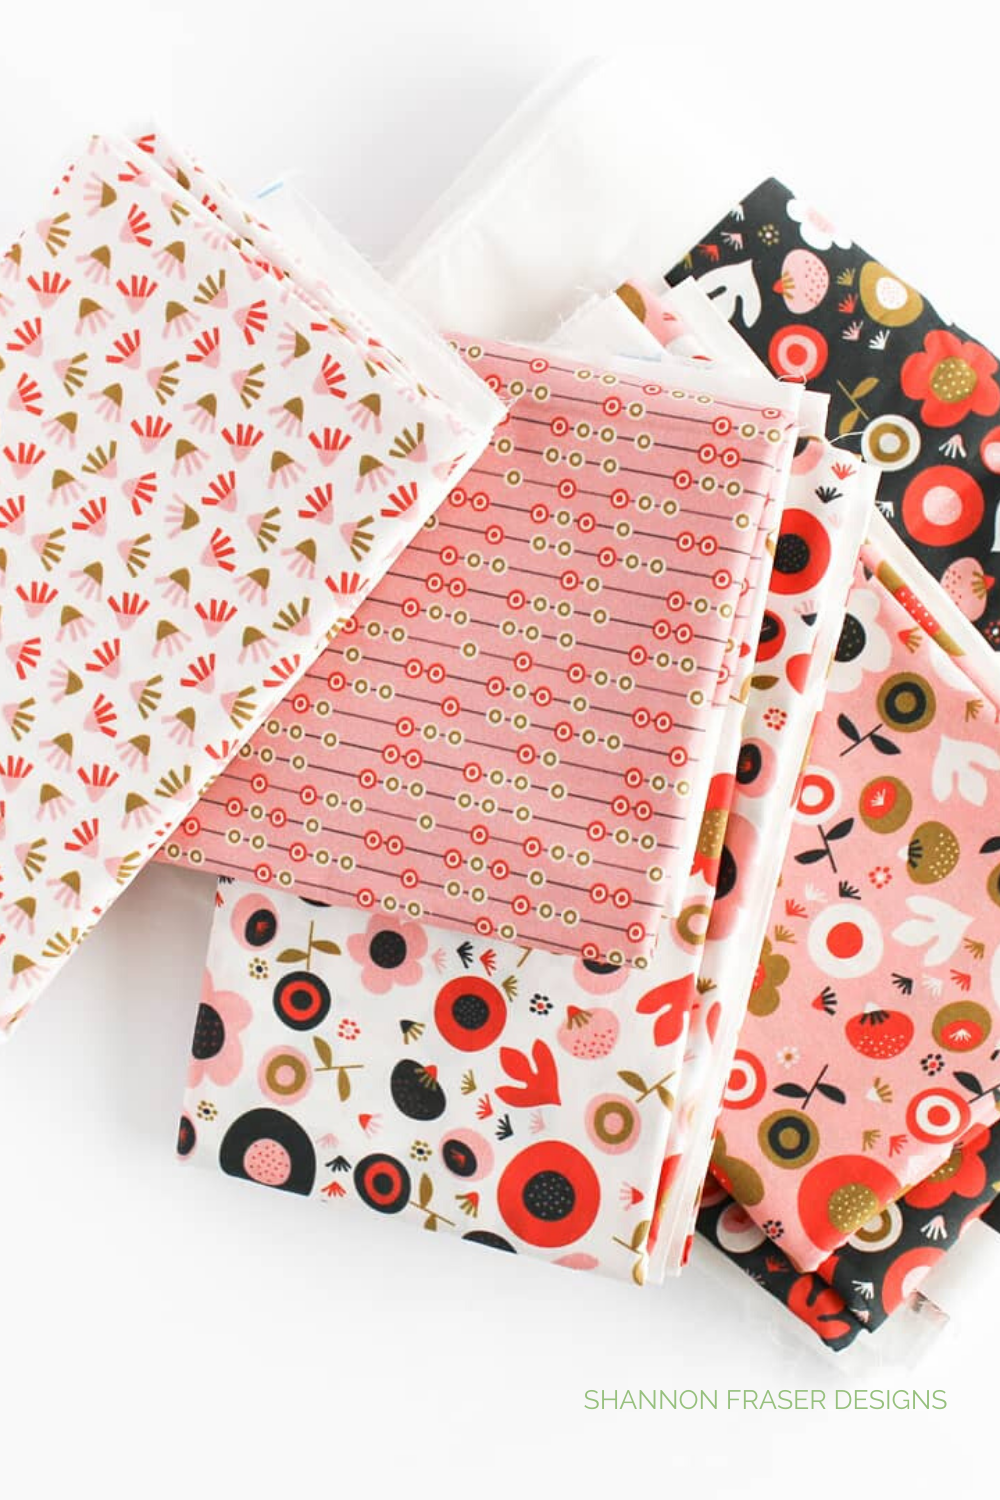 Pink, cream and black floral fabric designed by Oak Print Design and featured in the Ecliptic quilt | Ecliptic Quilt featured in Love Patchwork and Quilting Magazine | Shannon Fraser Designs #fabric #spoonflower